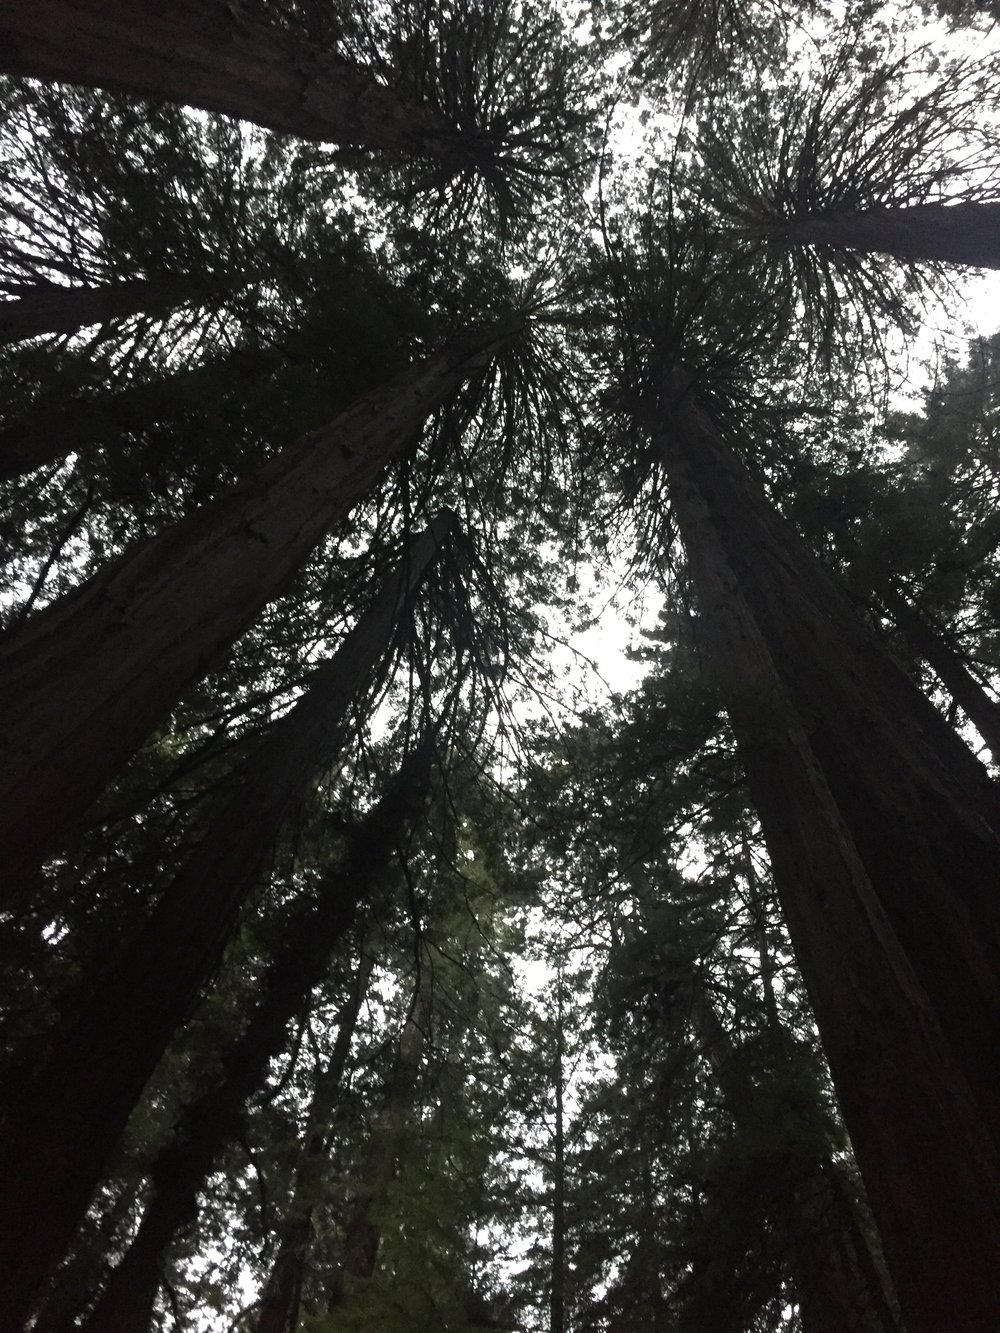 The Redwoods of Muir Woods are over 250 ft. and range in width to 14 ft. Some of these big guys are over 1,000 years old!